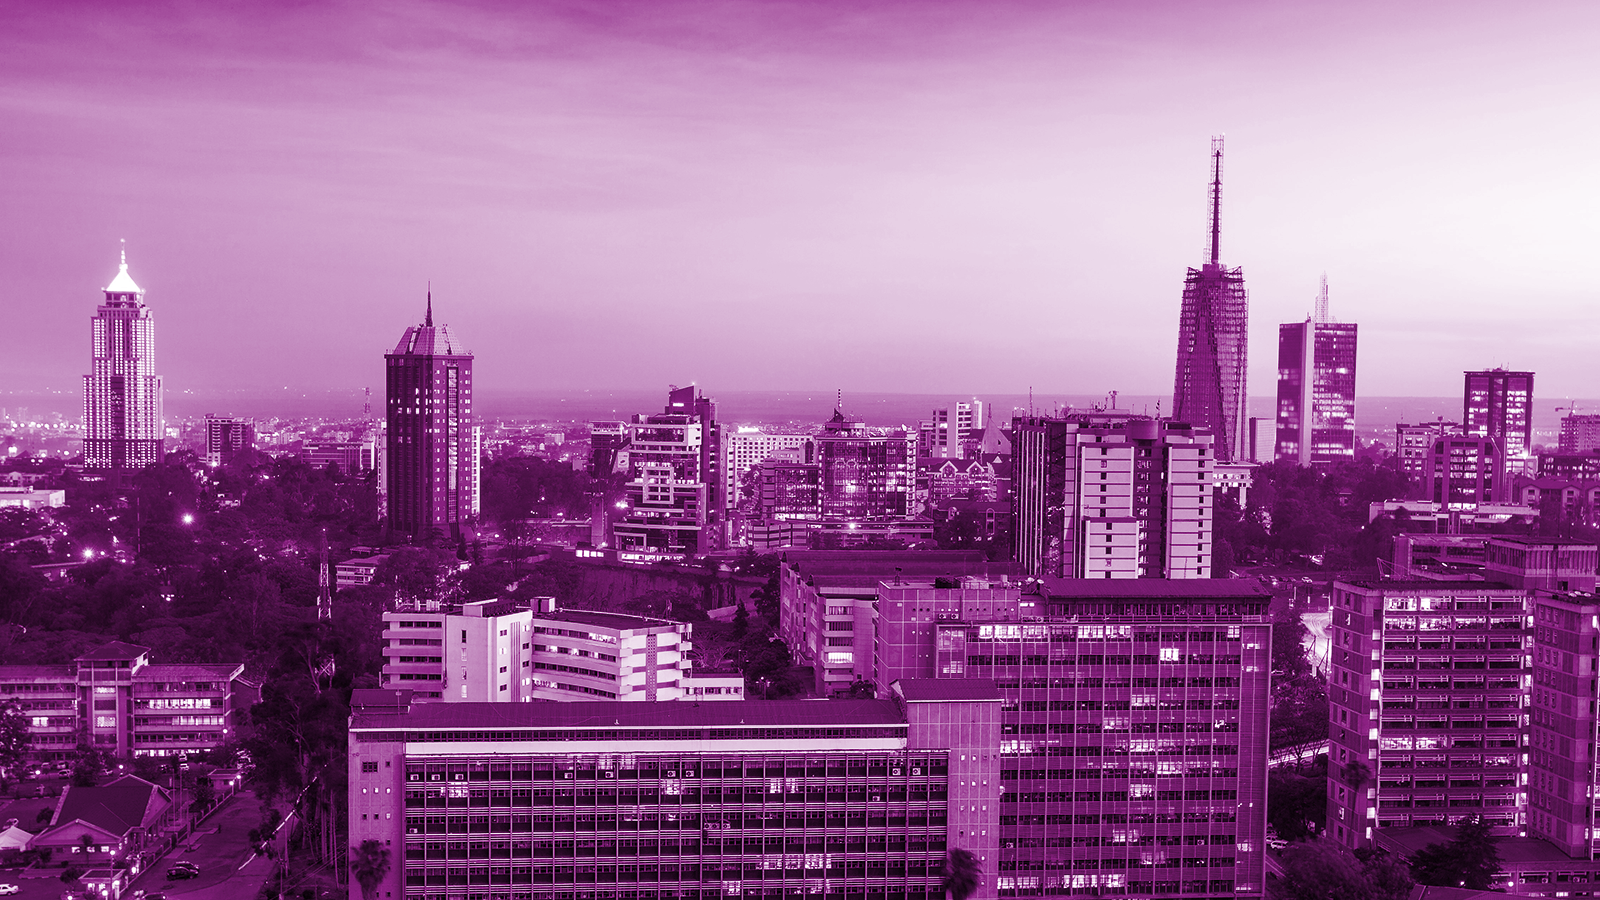 City landscape with a purple filter